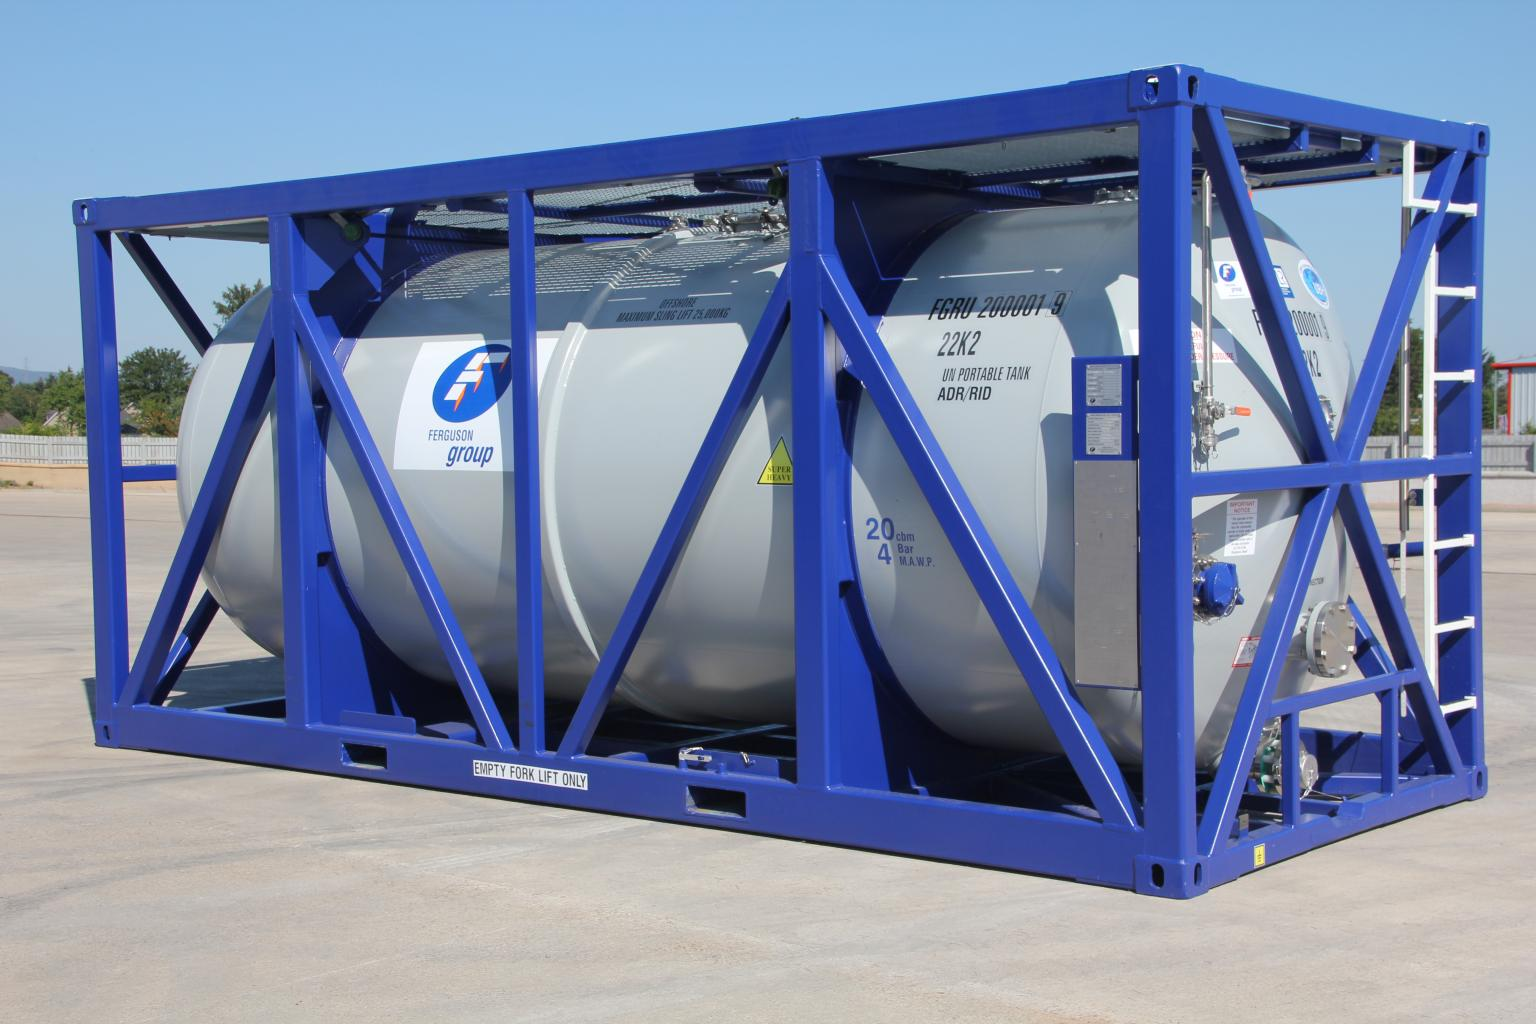 The Ferguson Group uses customer feedback to tailor its solutions, including its offshore tanks